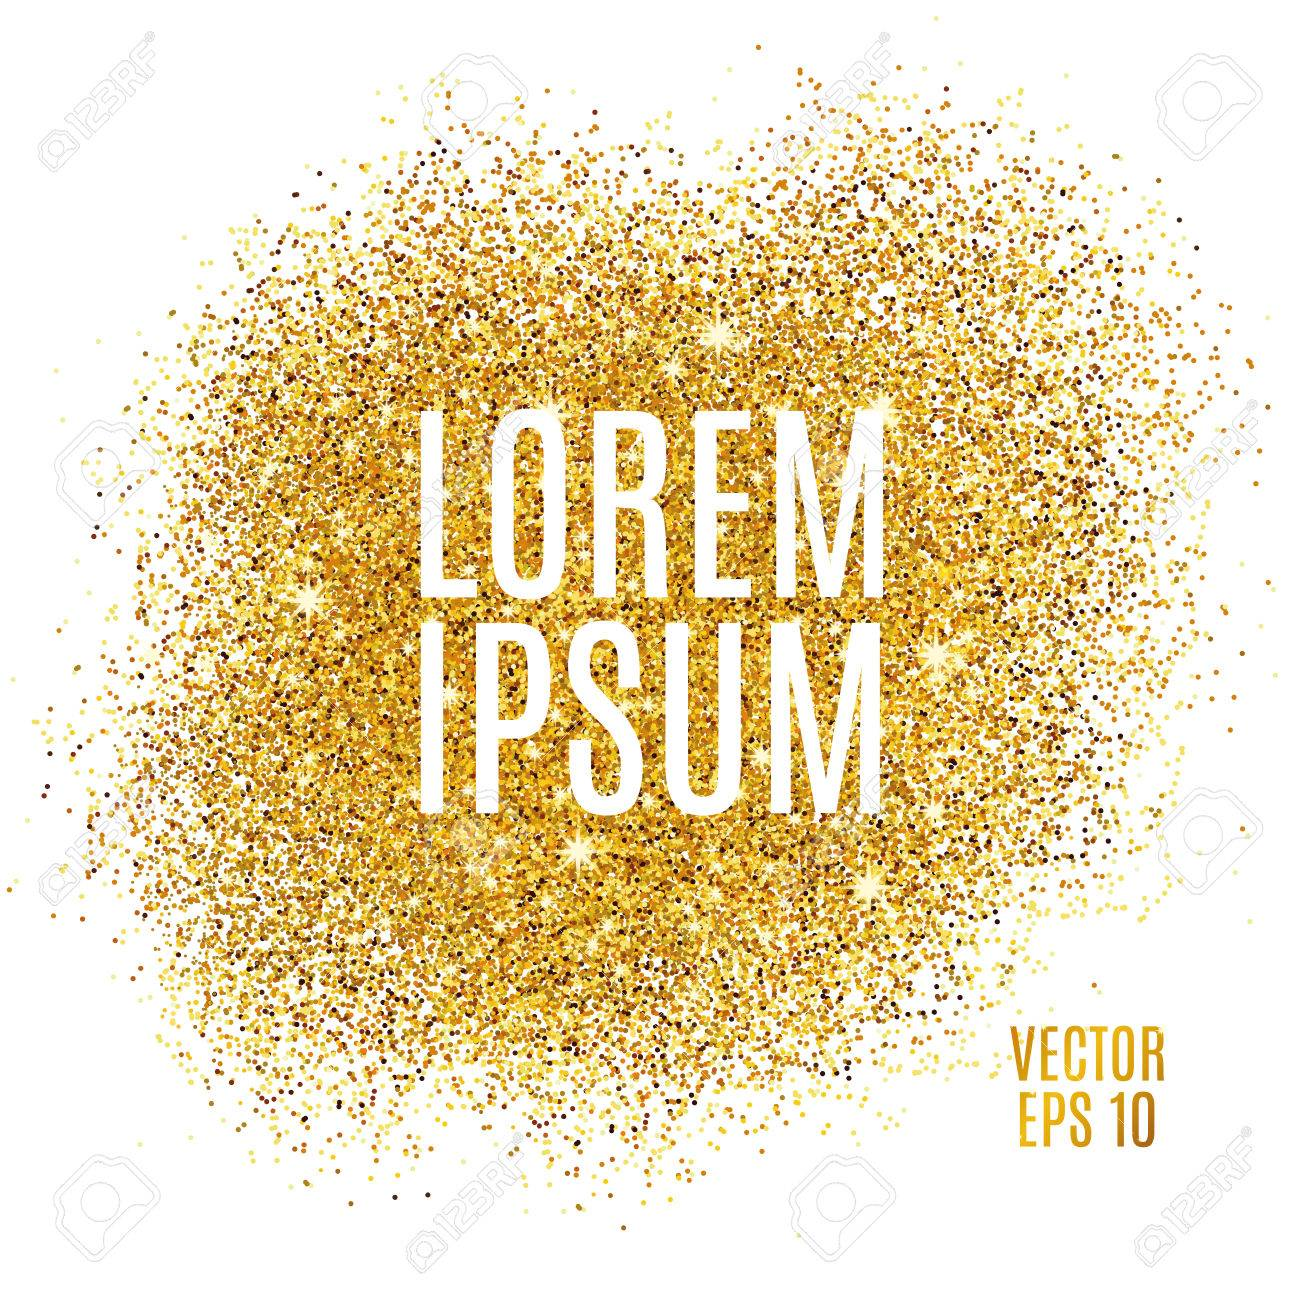 Gold sparkles on white background. Gold glitter background. Gold text for card, vip exclusive, certificate gift, luxury privilege, voucher, store present, shopping. - 52729572